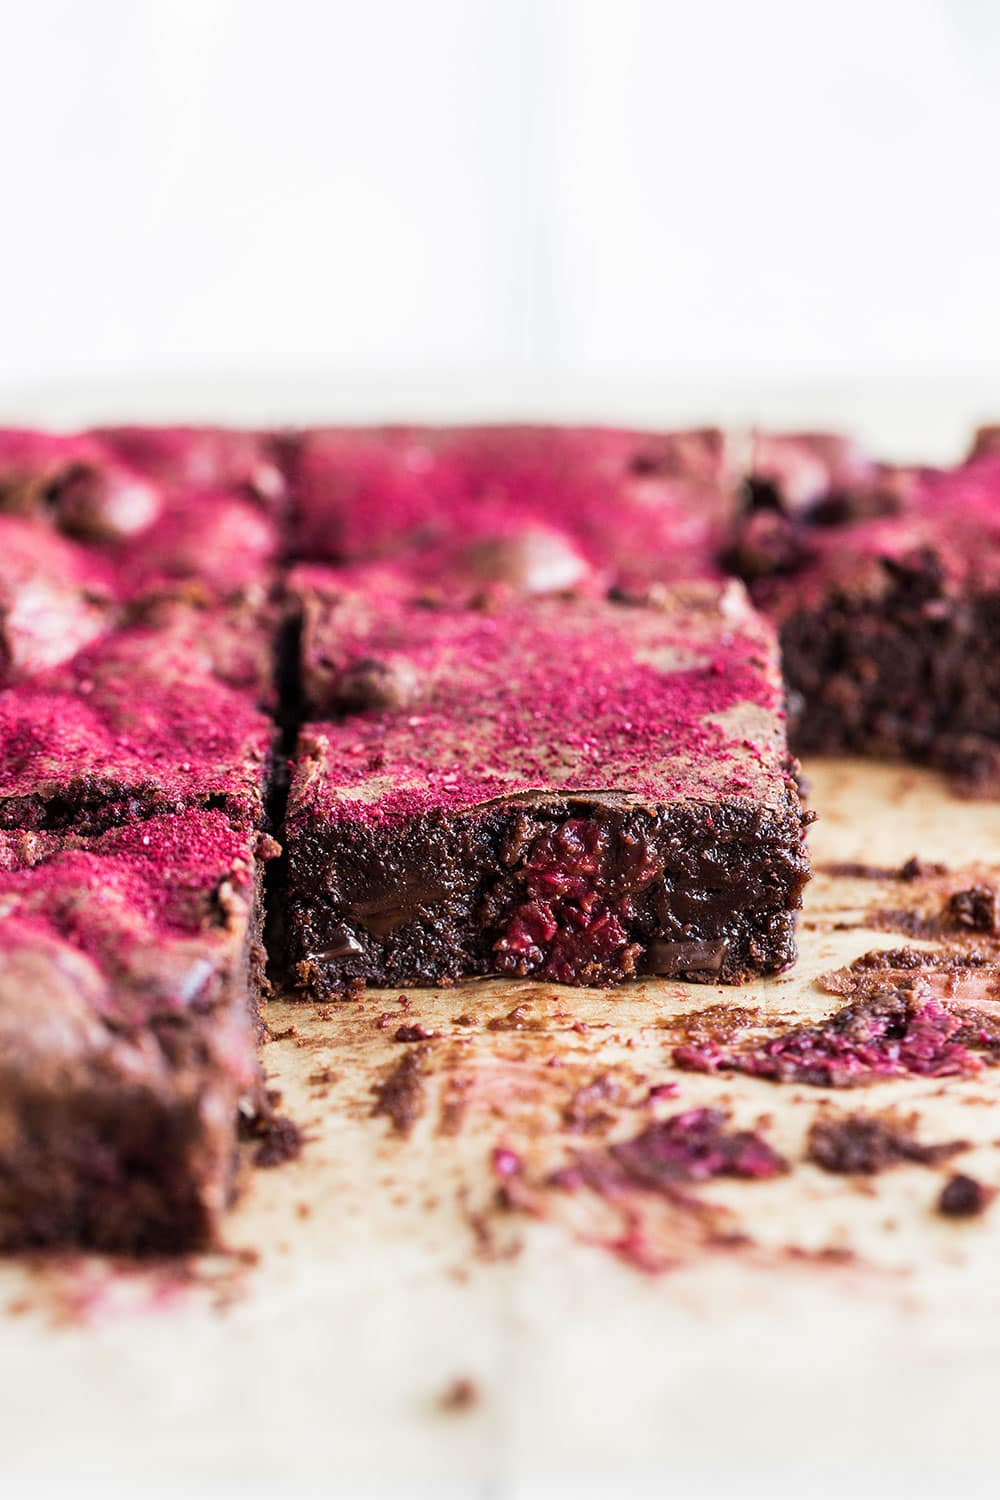 Raspberry Brownie Recipe is so pretty for Valentine's Day!